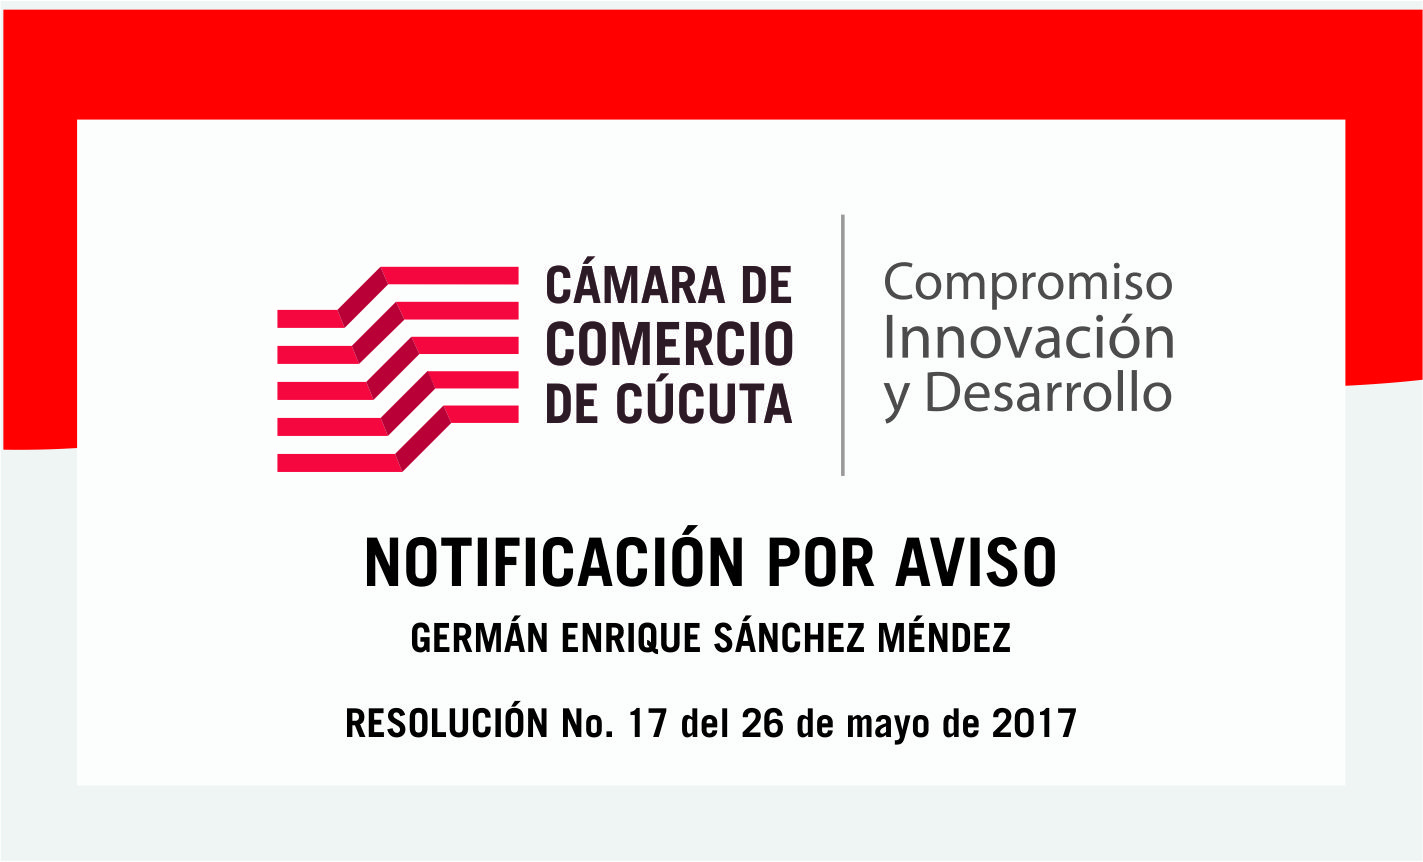 Notificación por aviso a GERMAN ENRIQUE SANCHEZ MENDEZ